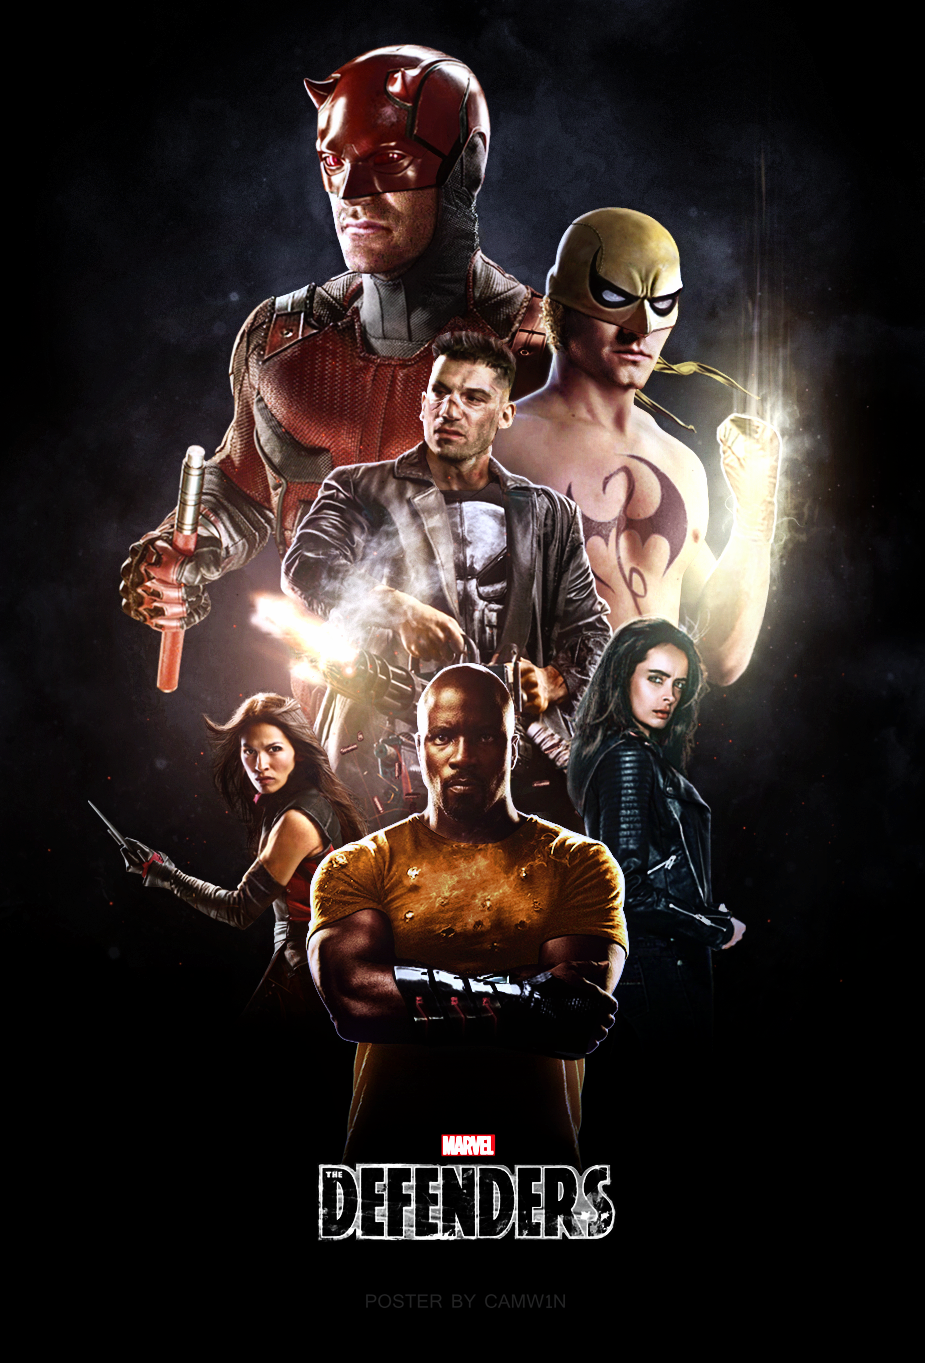 The Defenders (2017) - Poster 2 by CAMW1N on DeviantArt